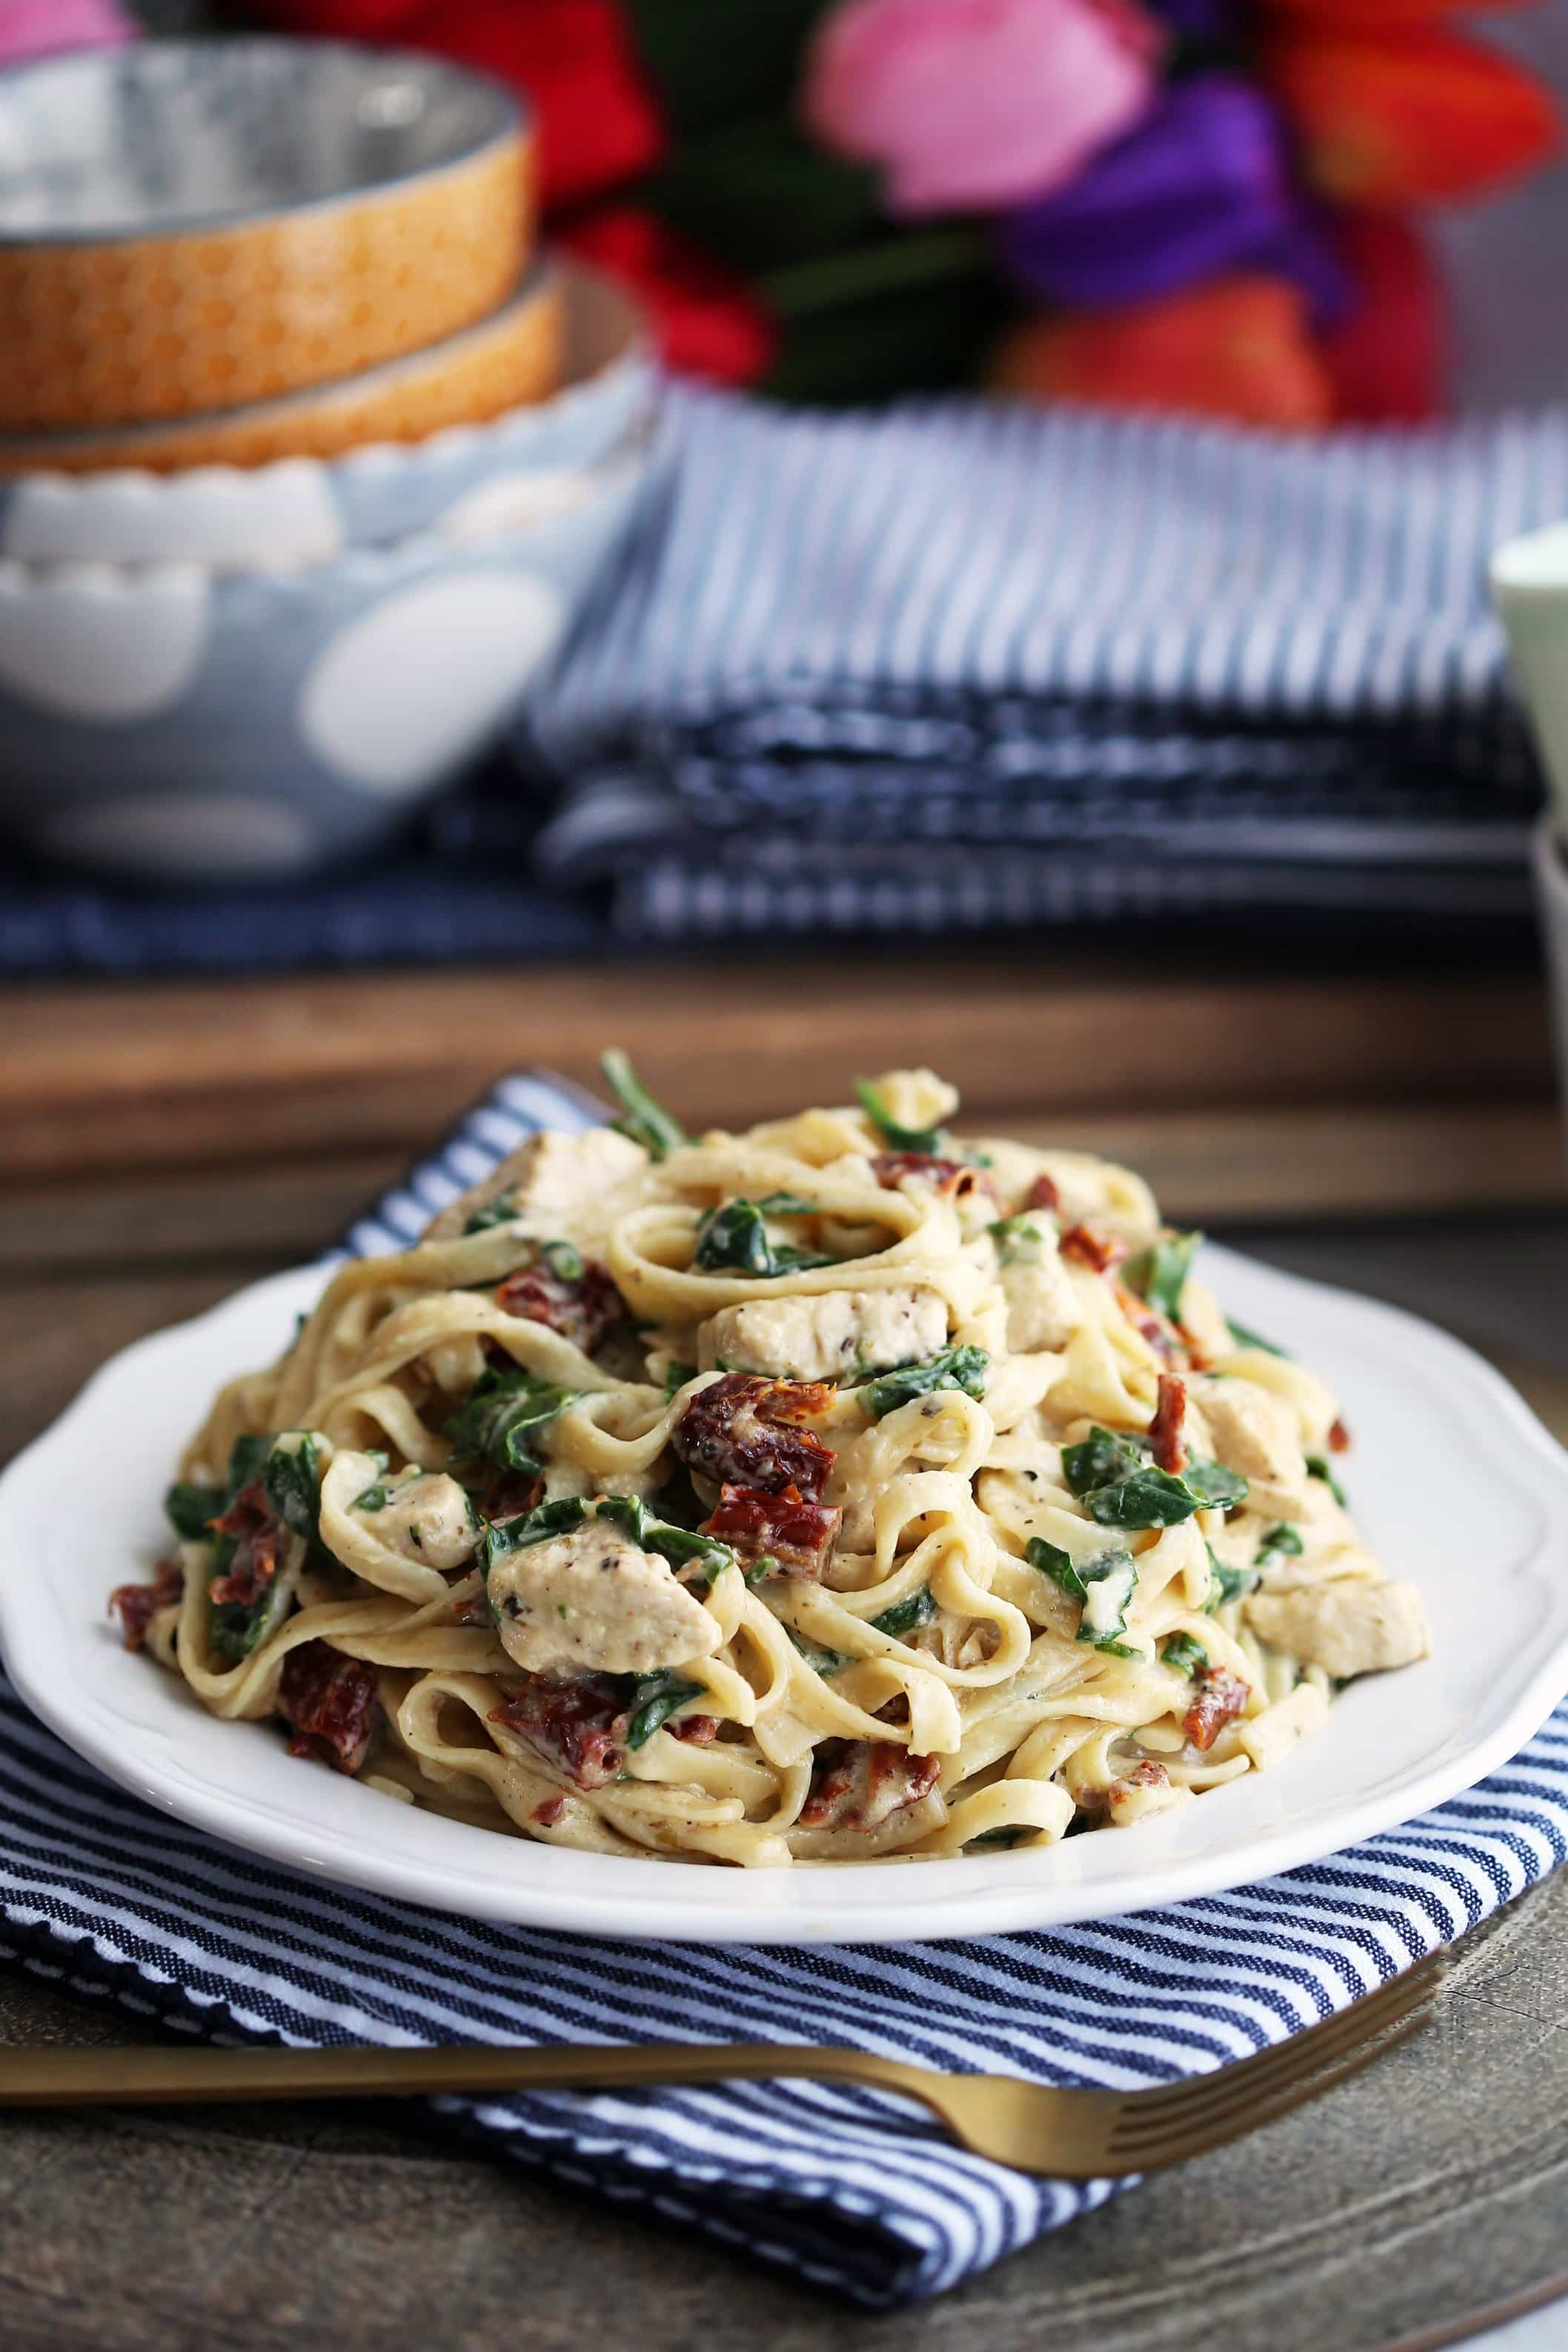 Instant Pot creamy fettuccine with chicken, spinach, and sun-dried tomatoes on a white plate.